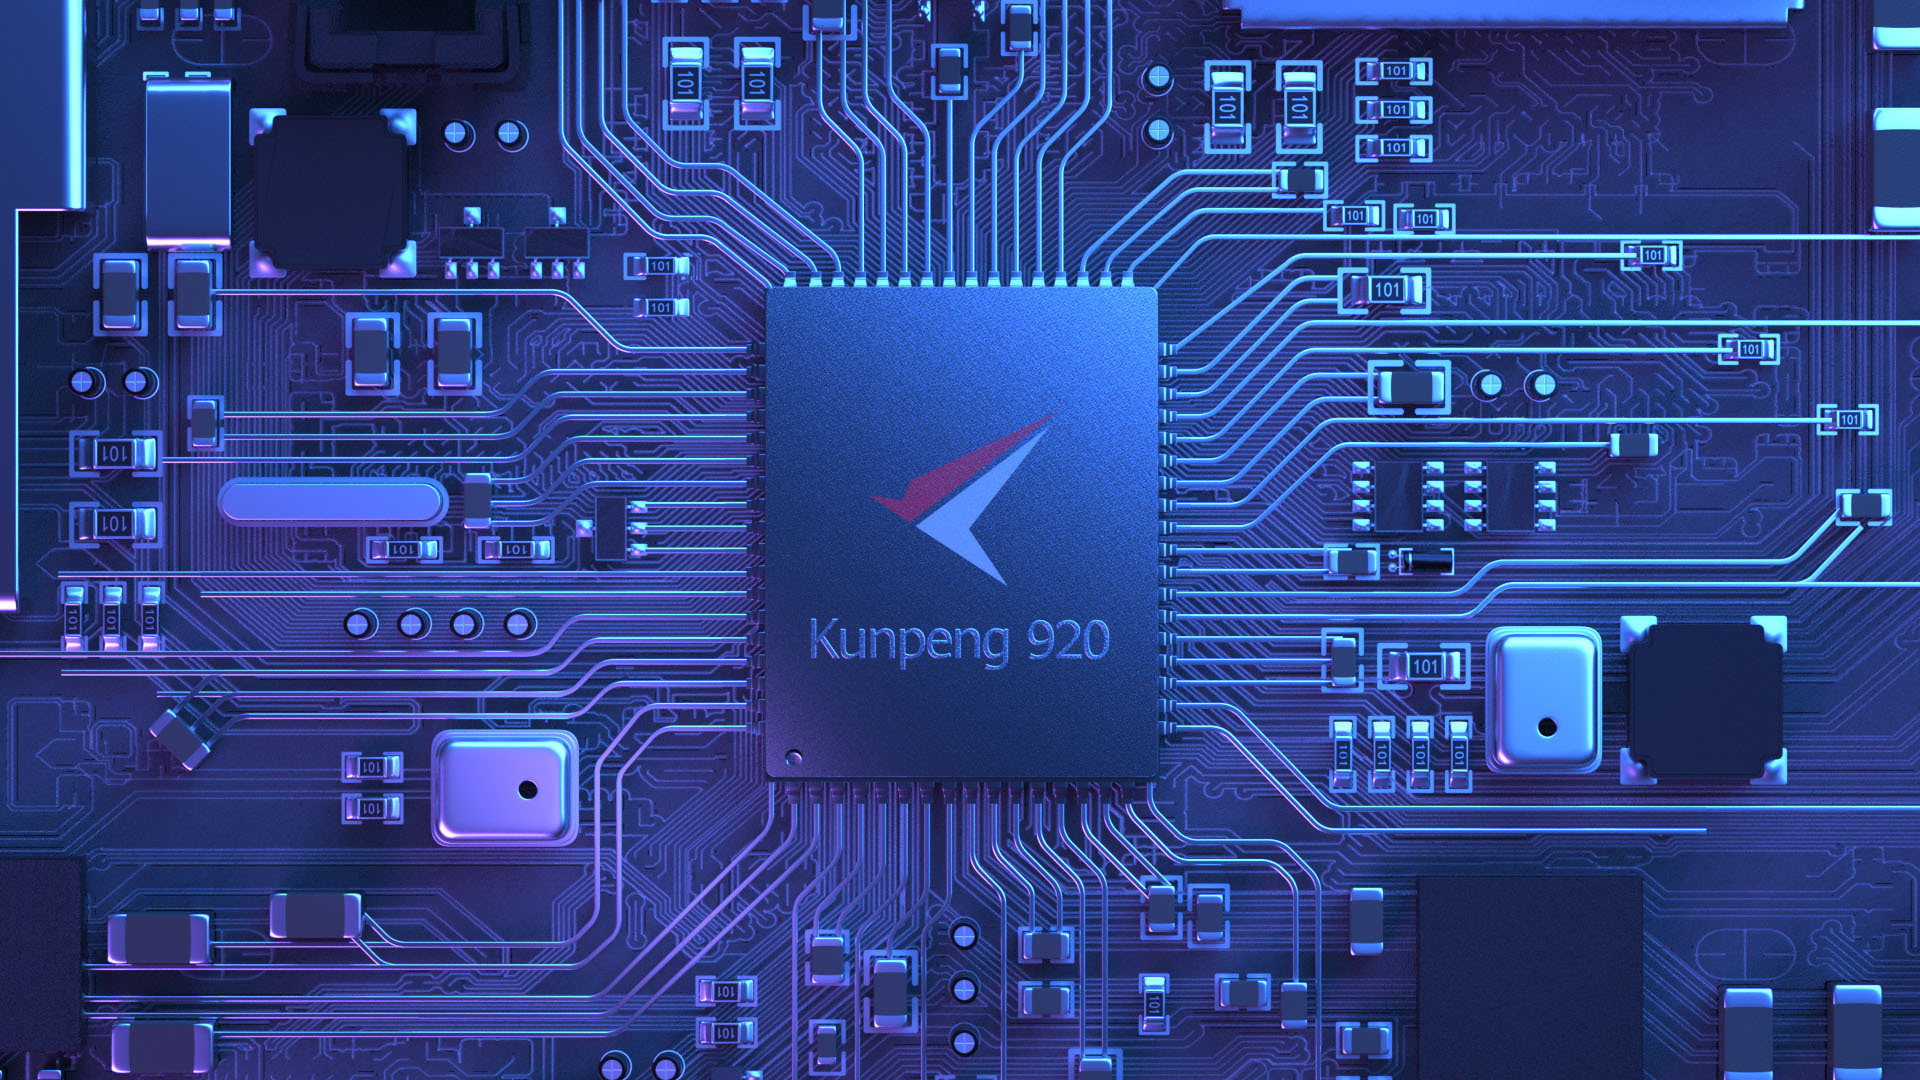 73729a6cfa068fe1085b0d82c7d5a - Huawei launches PCs equipped with ARM chips in China: the beginning of a big turn? - 01net.com